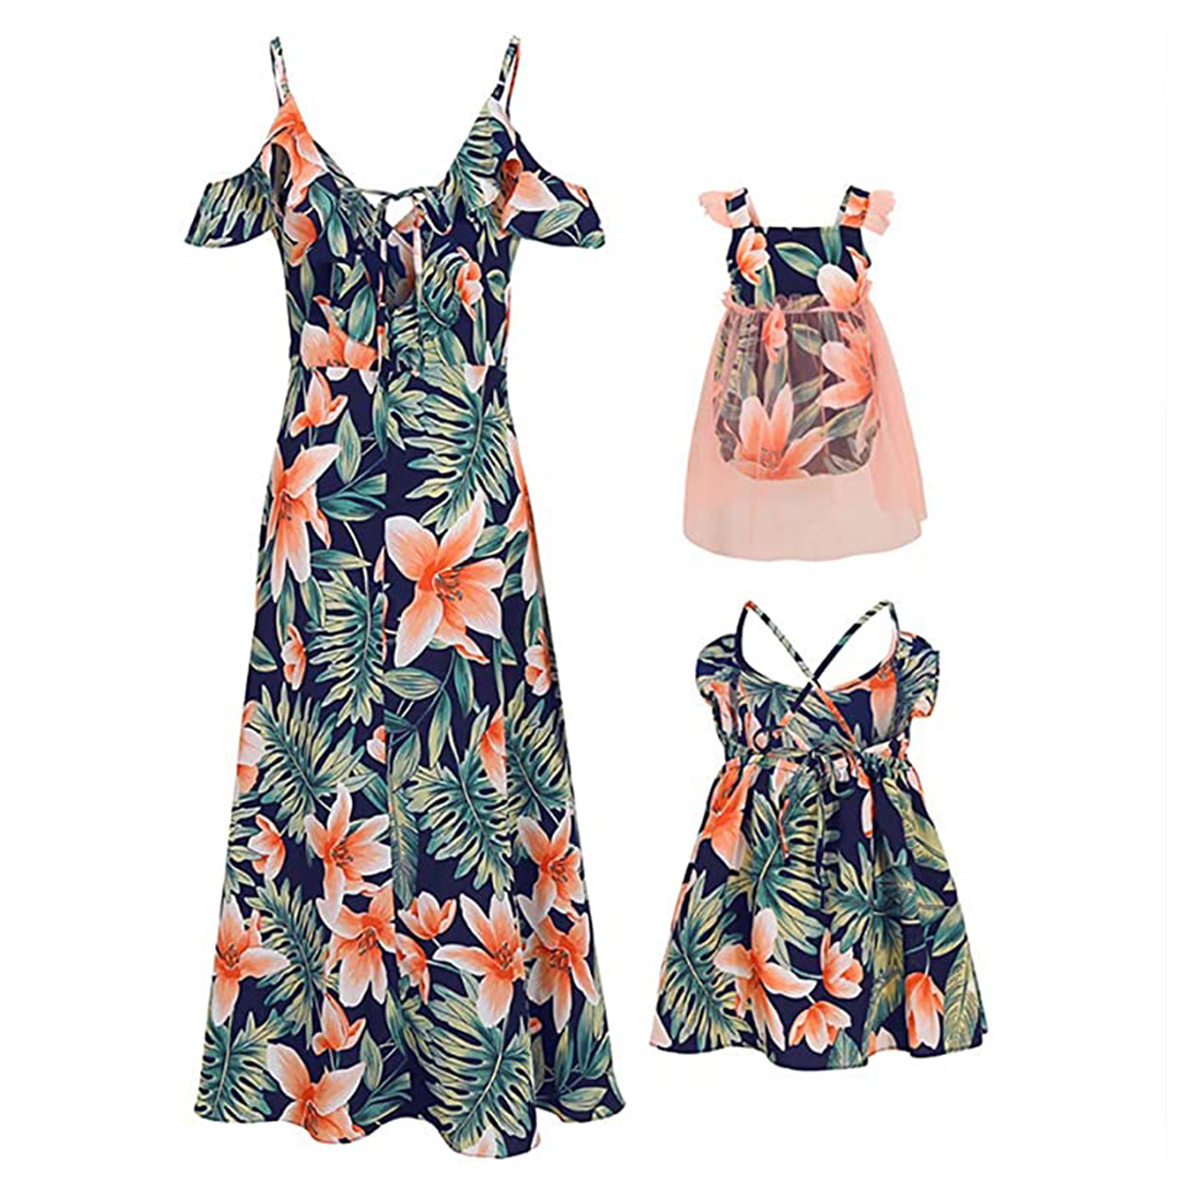 new-fashion-mommy-and-me-family-matching-sleeveless-flower-print-dress-mother-daughter-bow-headband-loose-boho-beach-dresses